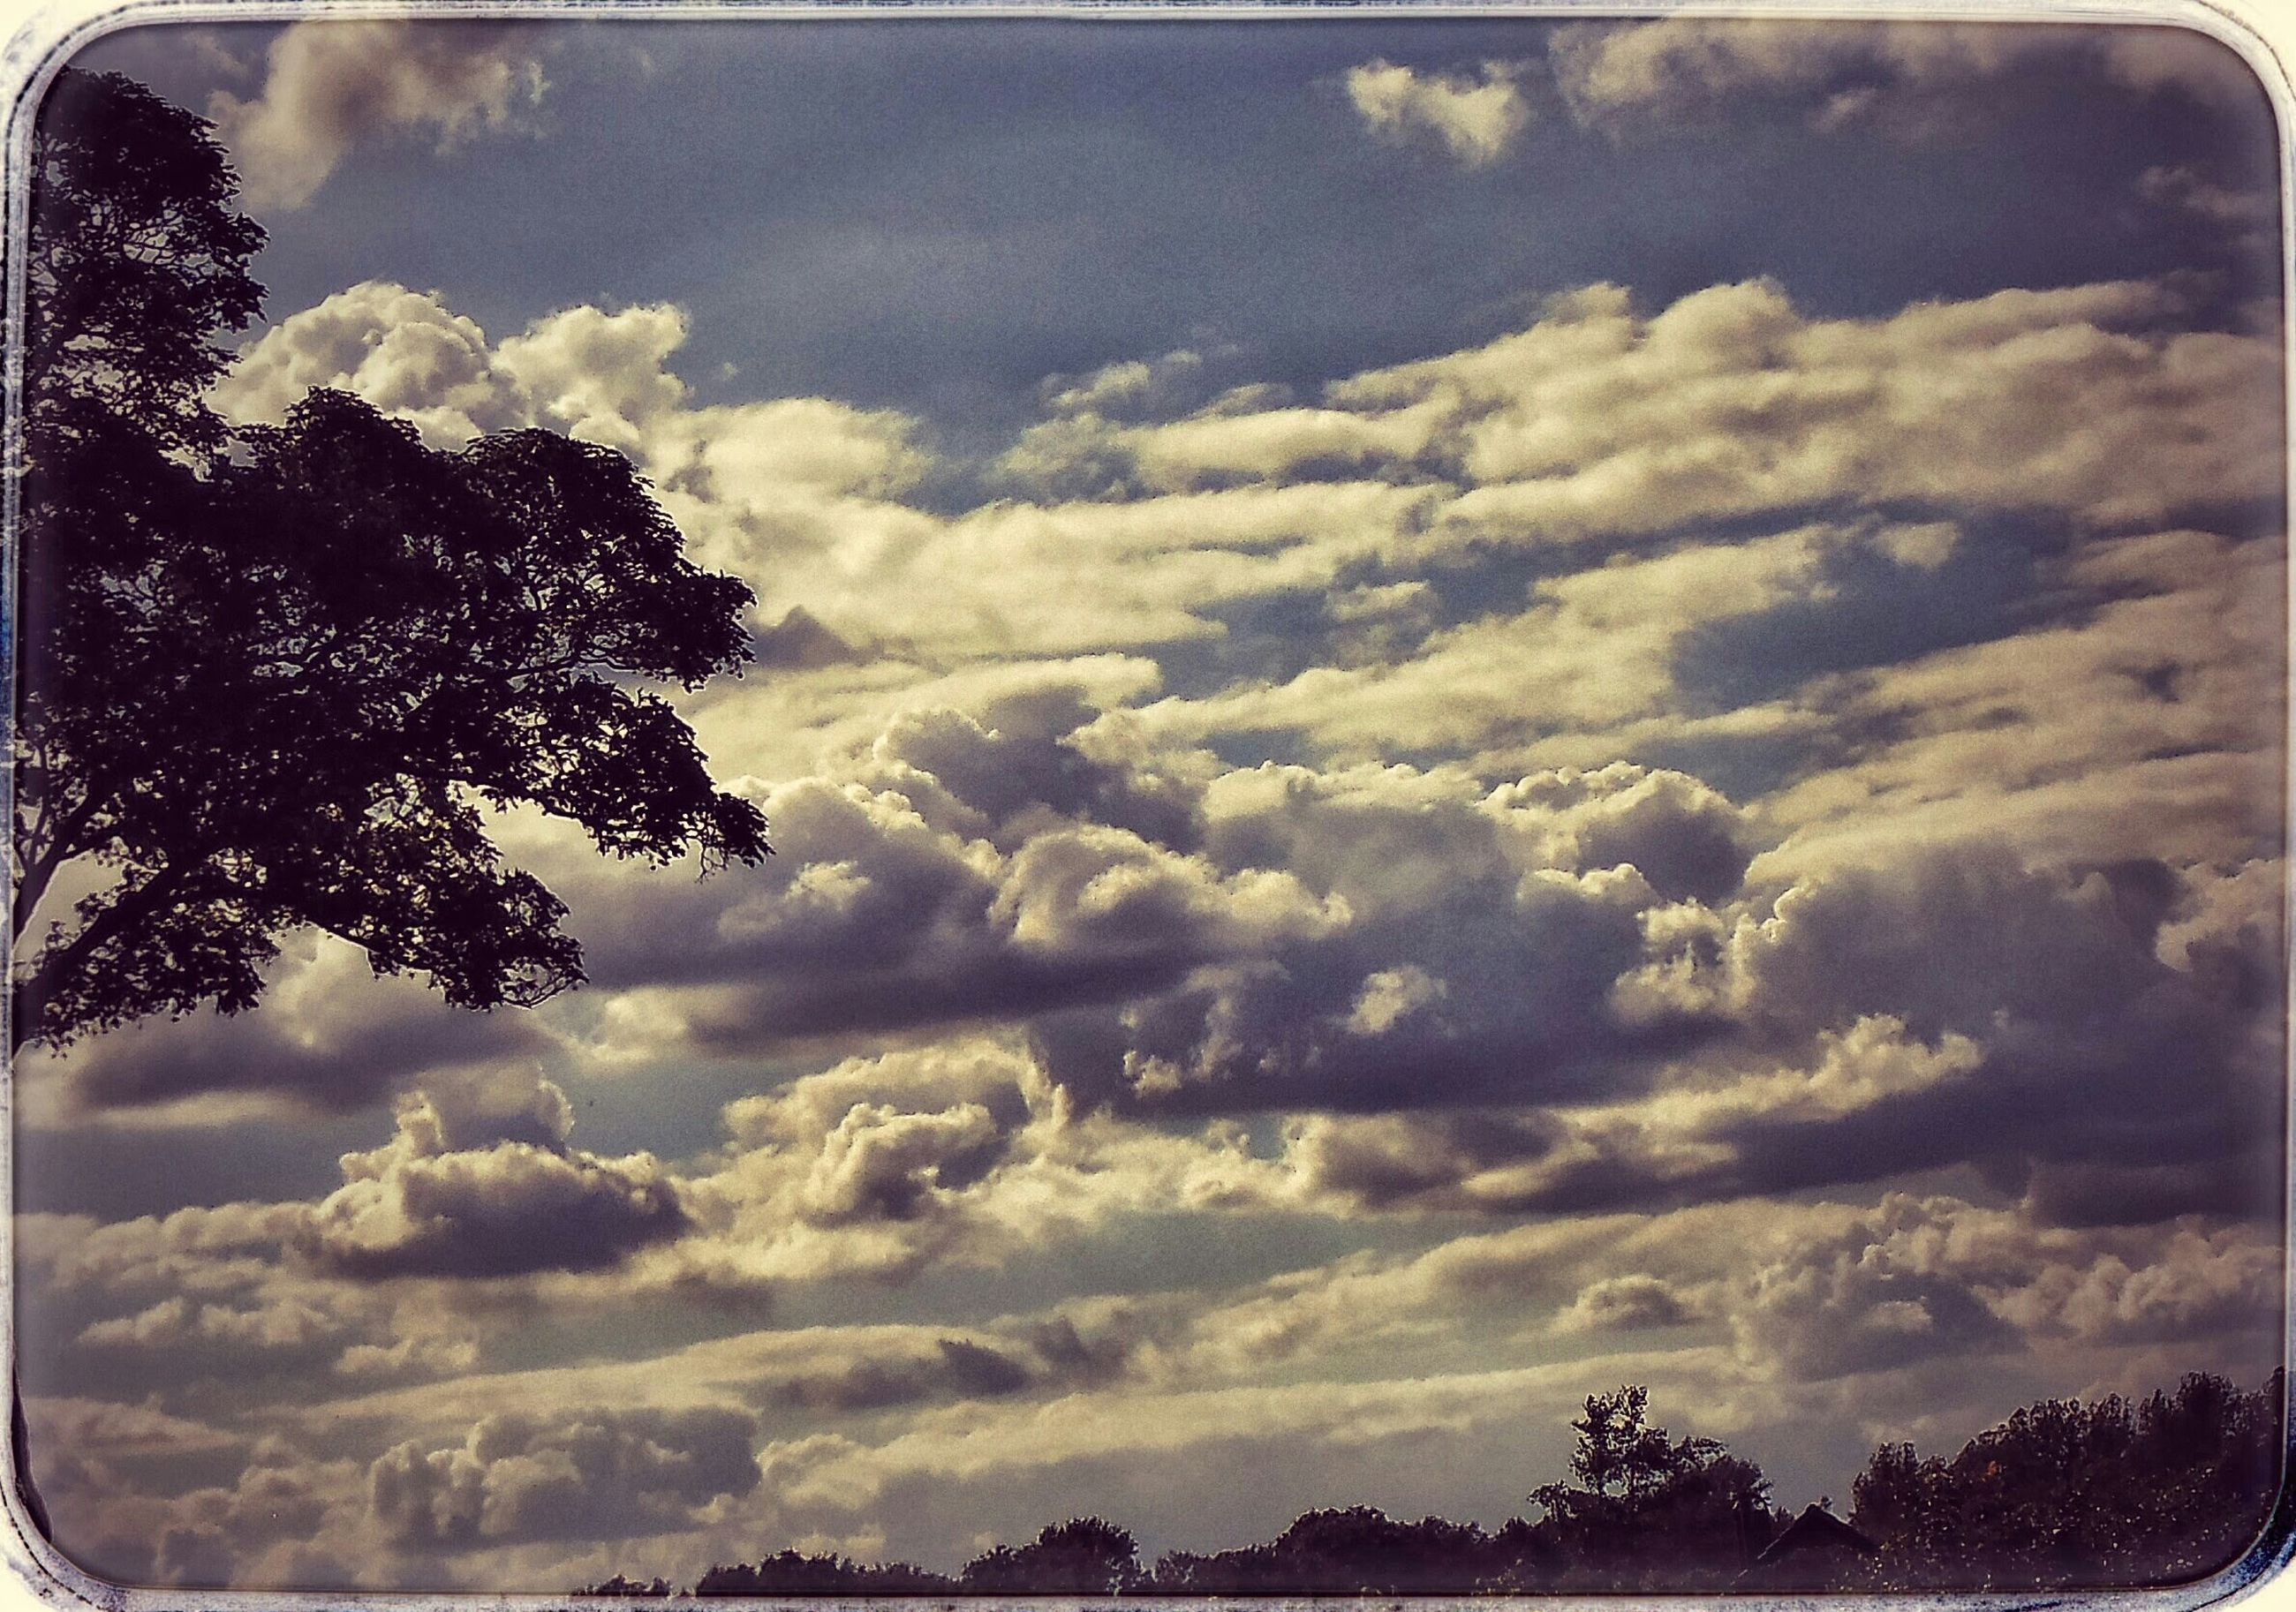 sky, transfer print, cloud - sky, tree, auto post production filter, cloudy, tranquility, tranquil scene, scenics, beauty in nature, cloud, nature, low angle view, silhouette, idyllic, outdoors, landscape, no people, day, weather